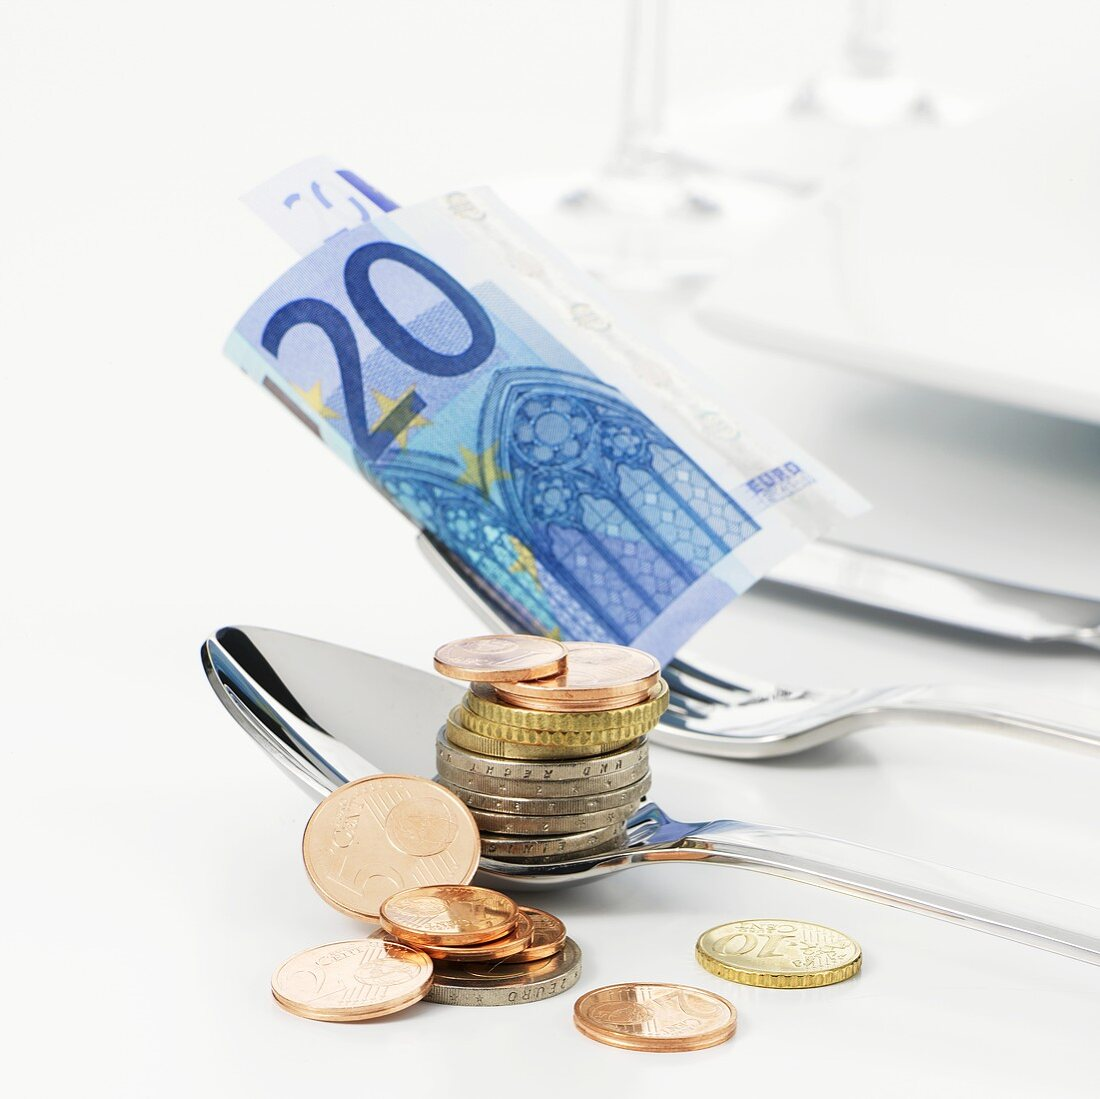 Euro coins on spoon, euro note on fork